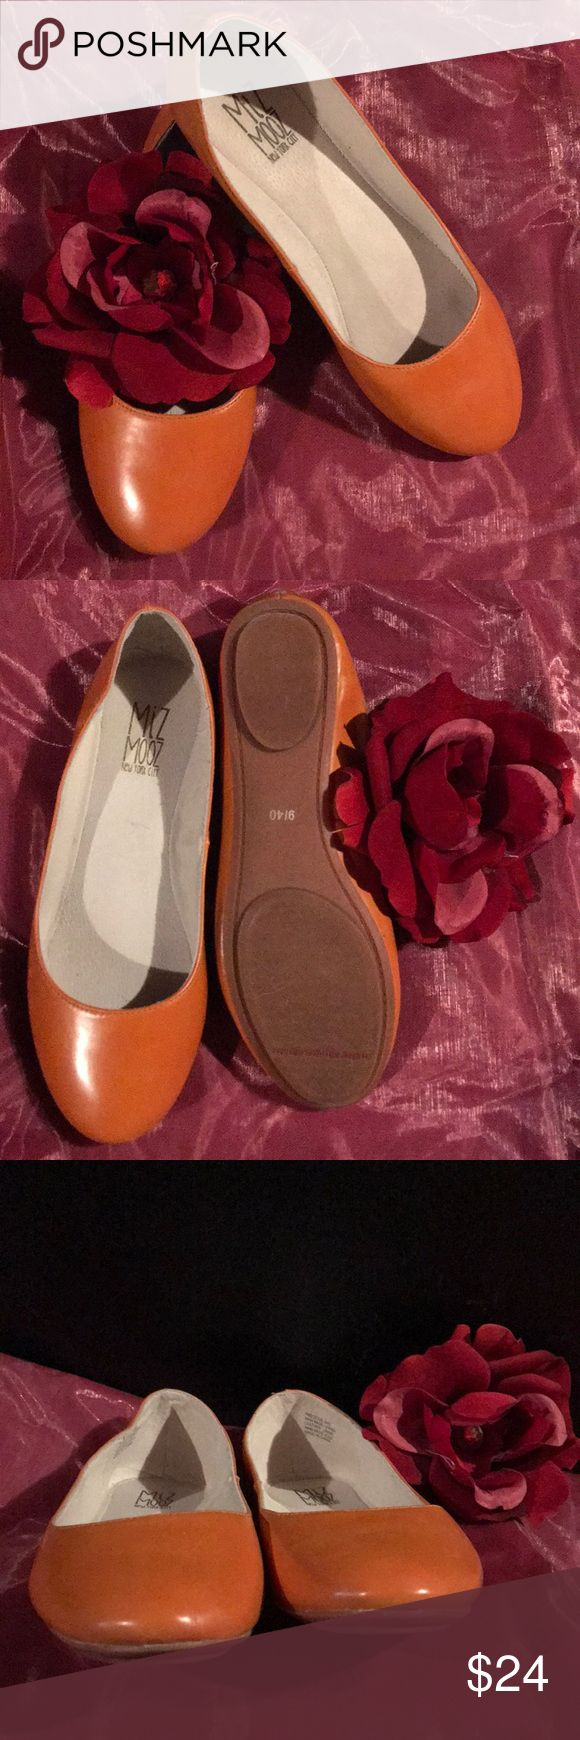 Miz Mooz ballet flats 9 Miz Mooz precious ballet flats from Stitch Fix.  Upper leather lining and man made some. Size 9 (40).  Gently worn, see photos for wear. Color: cognac/camel. Miz Mooz Shoes Flats & Loafers